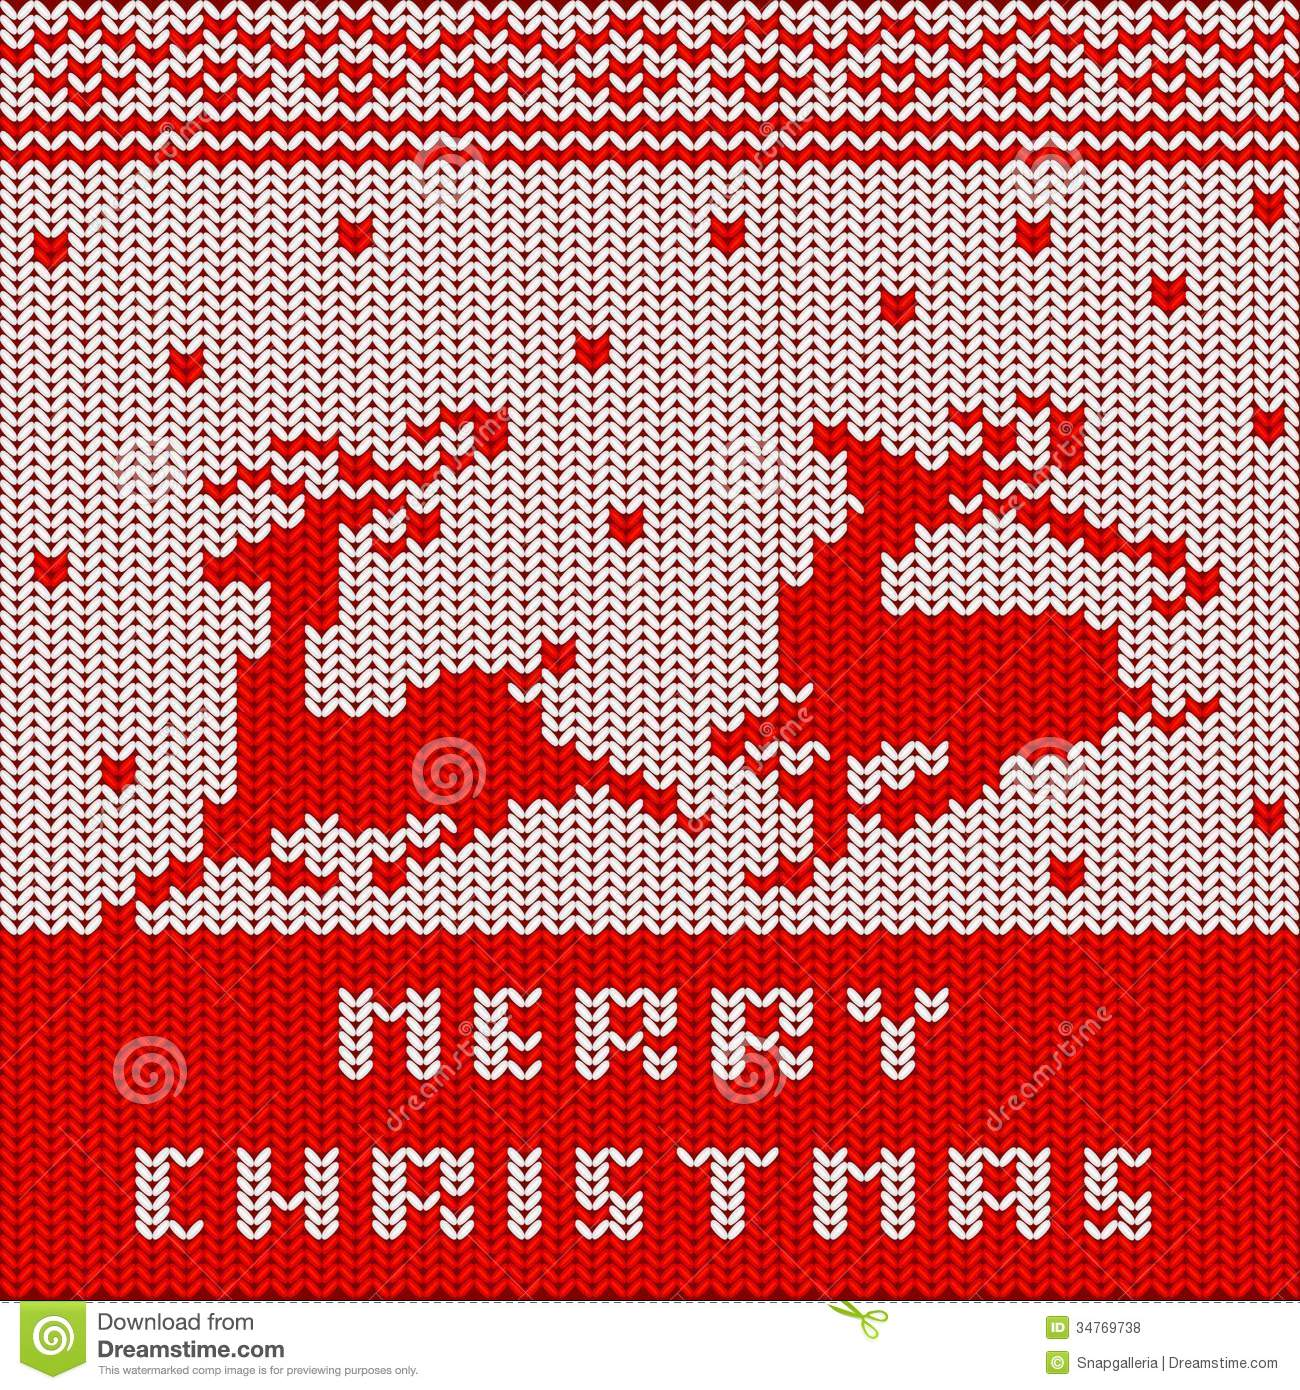 Ugly Christmas Jumper Knitting Pattern : Christmas Sweater Pattern Royalty Free Stock Photos - Image: 34769738